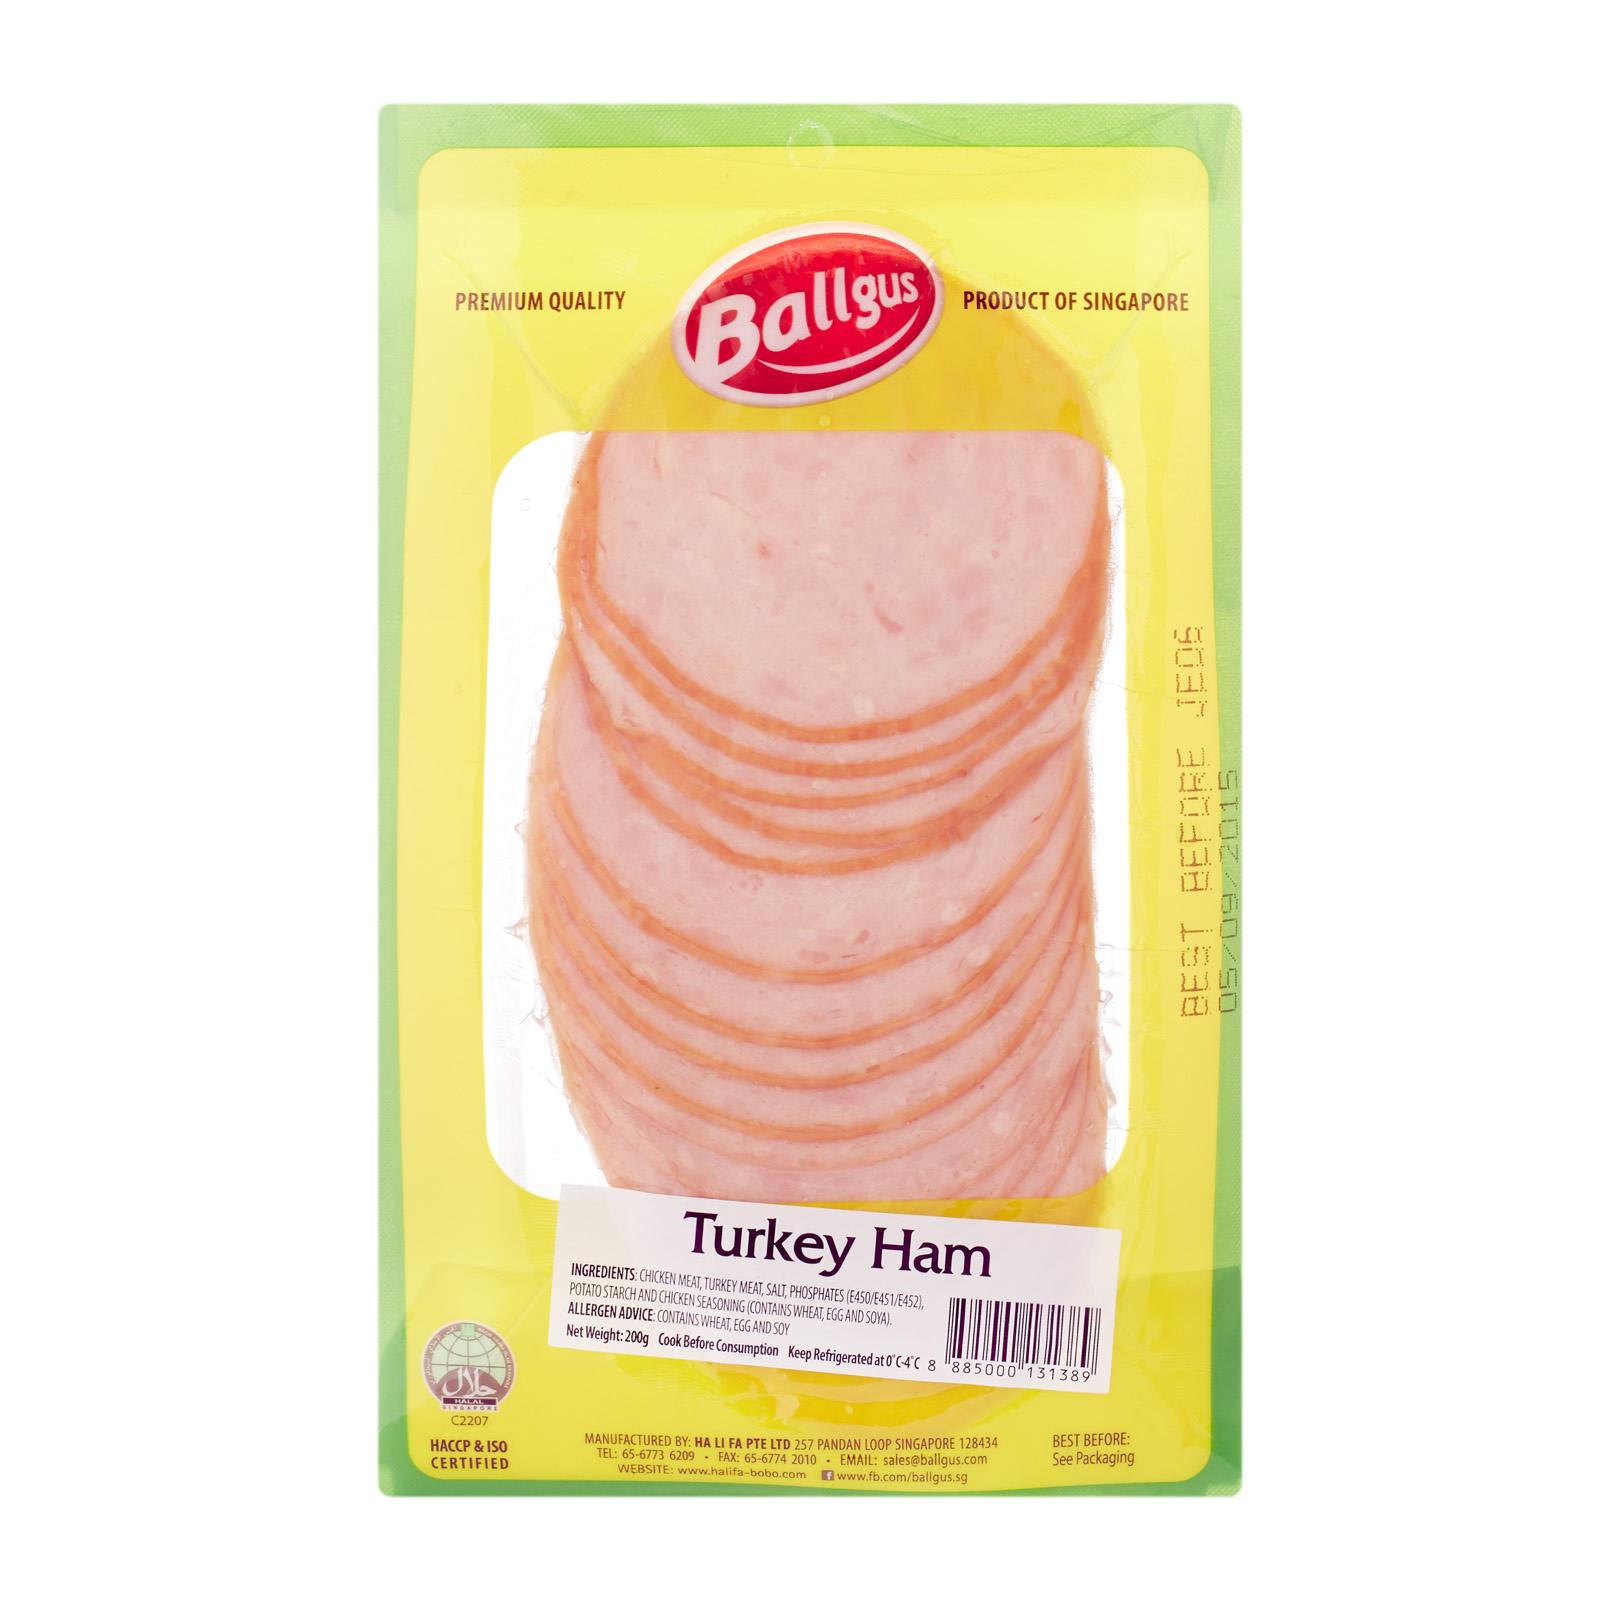 Ballgus Turkey Ham By Redmart.